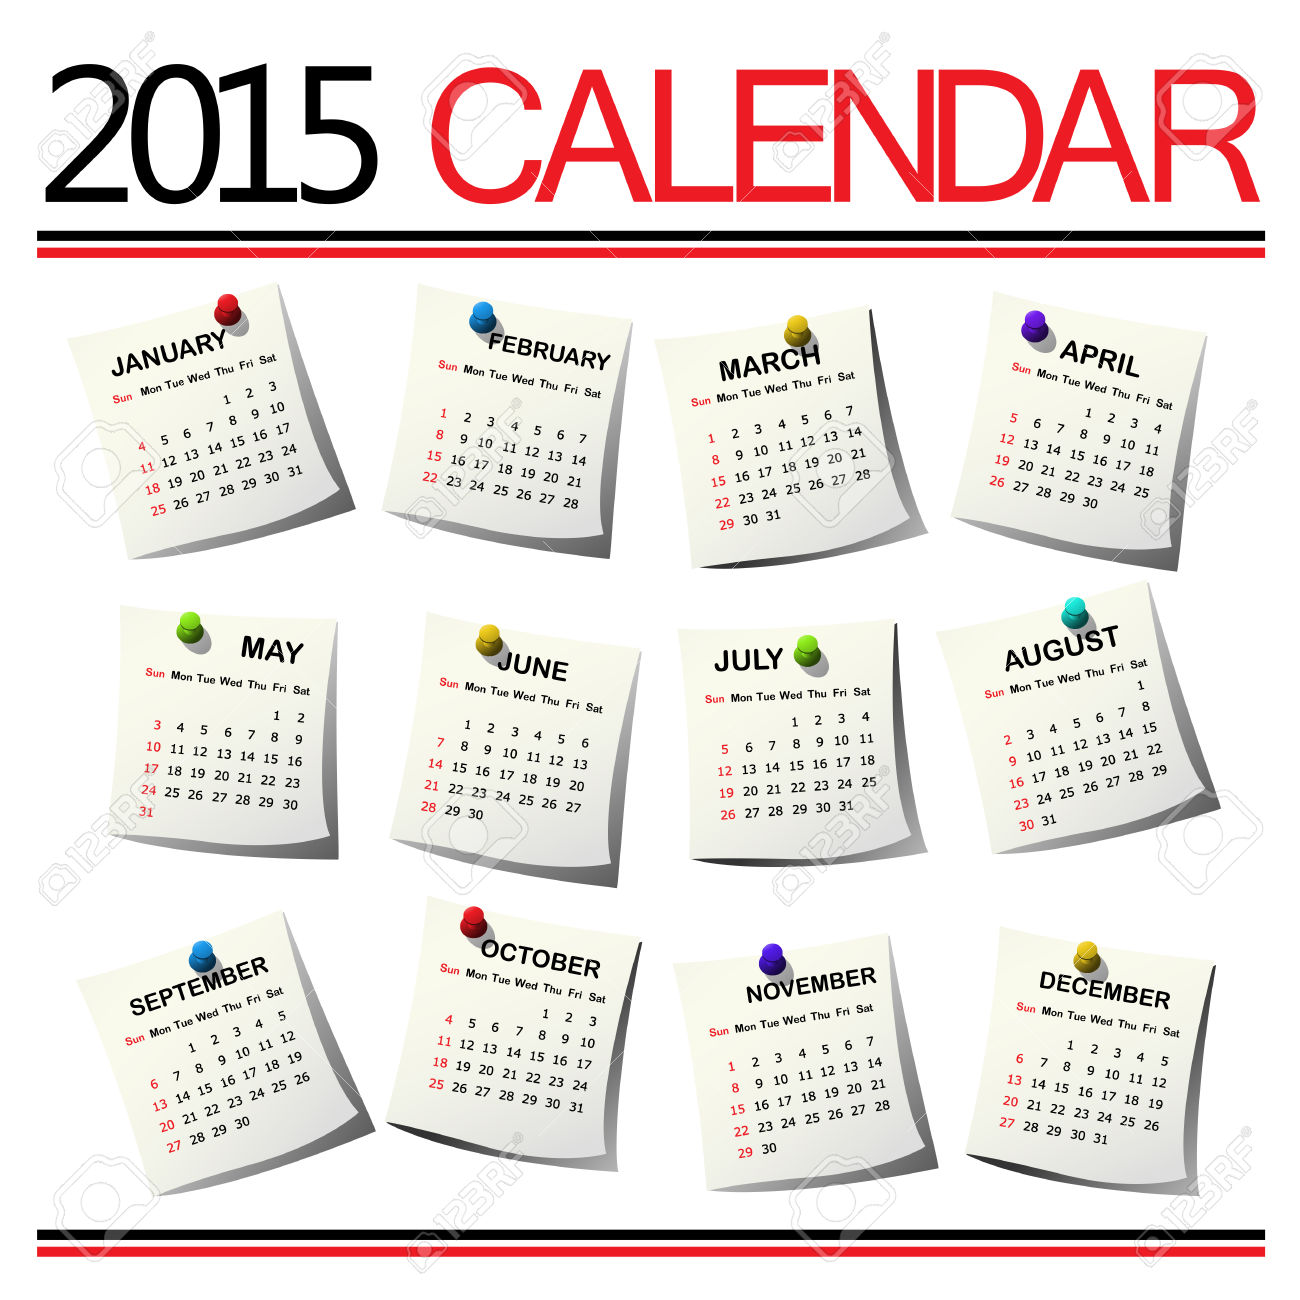 2015 Calendar Against White Background Royalty Free Cliparts.